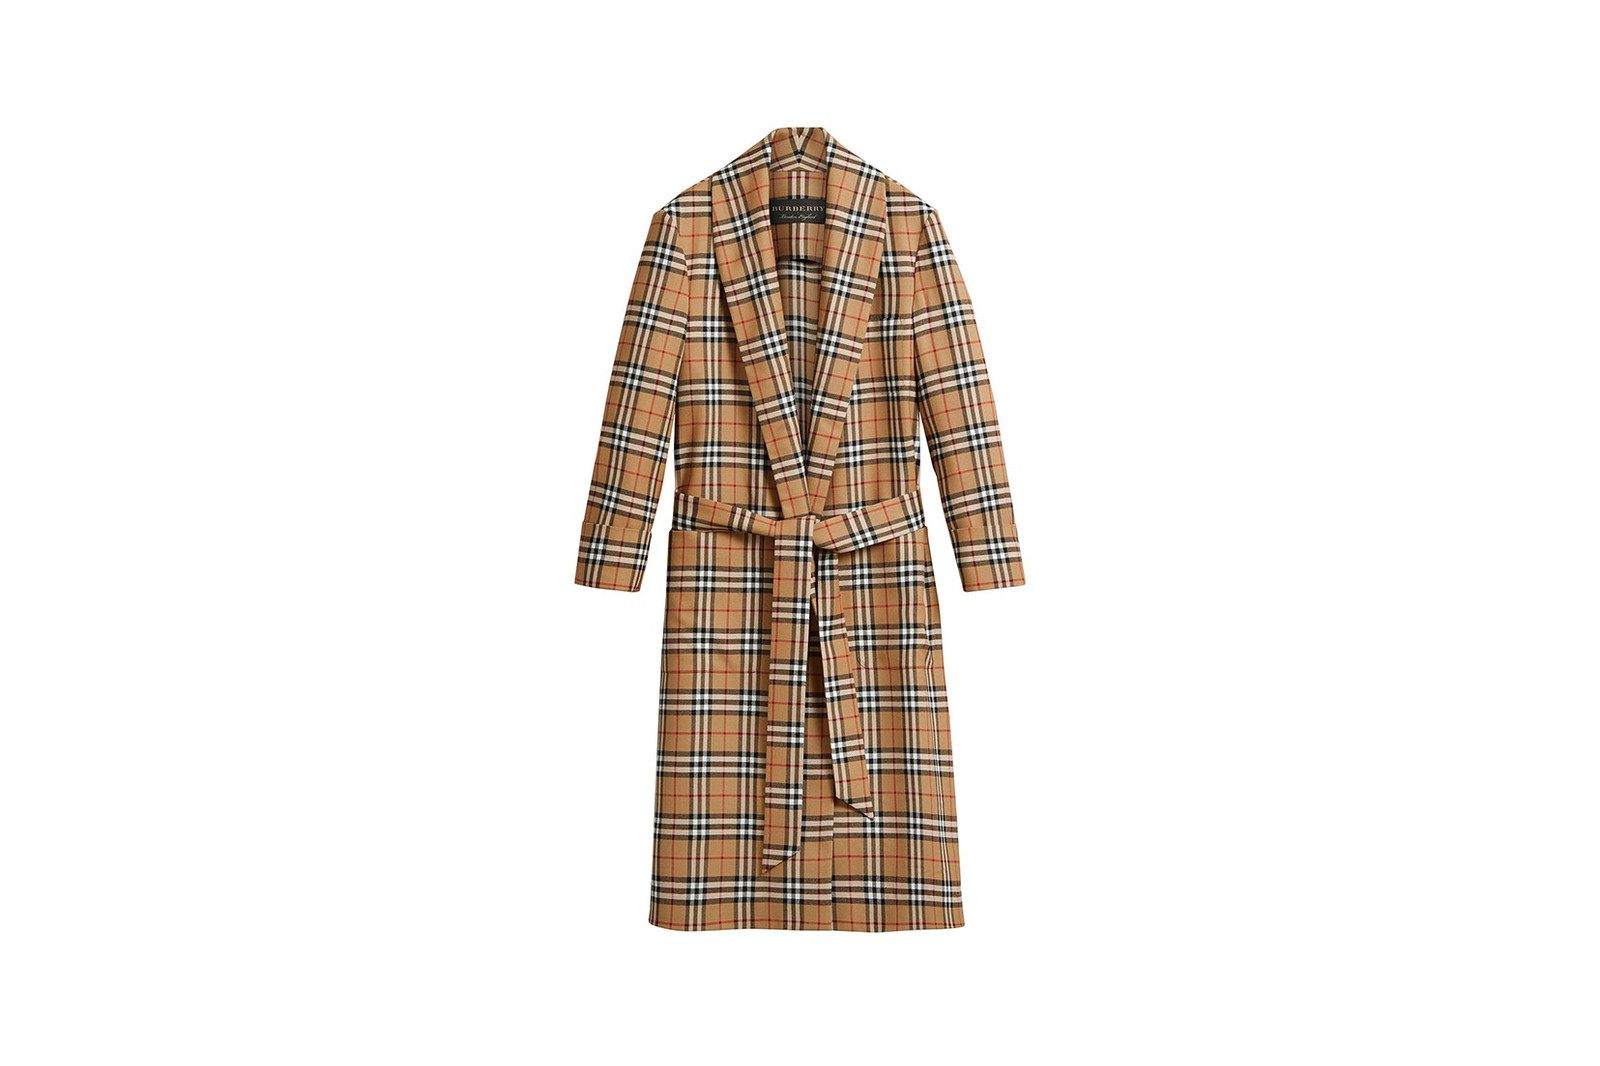 London Fashion Week 2018 Burberry Trench Coat